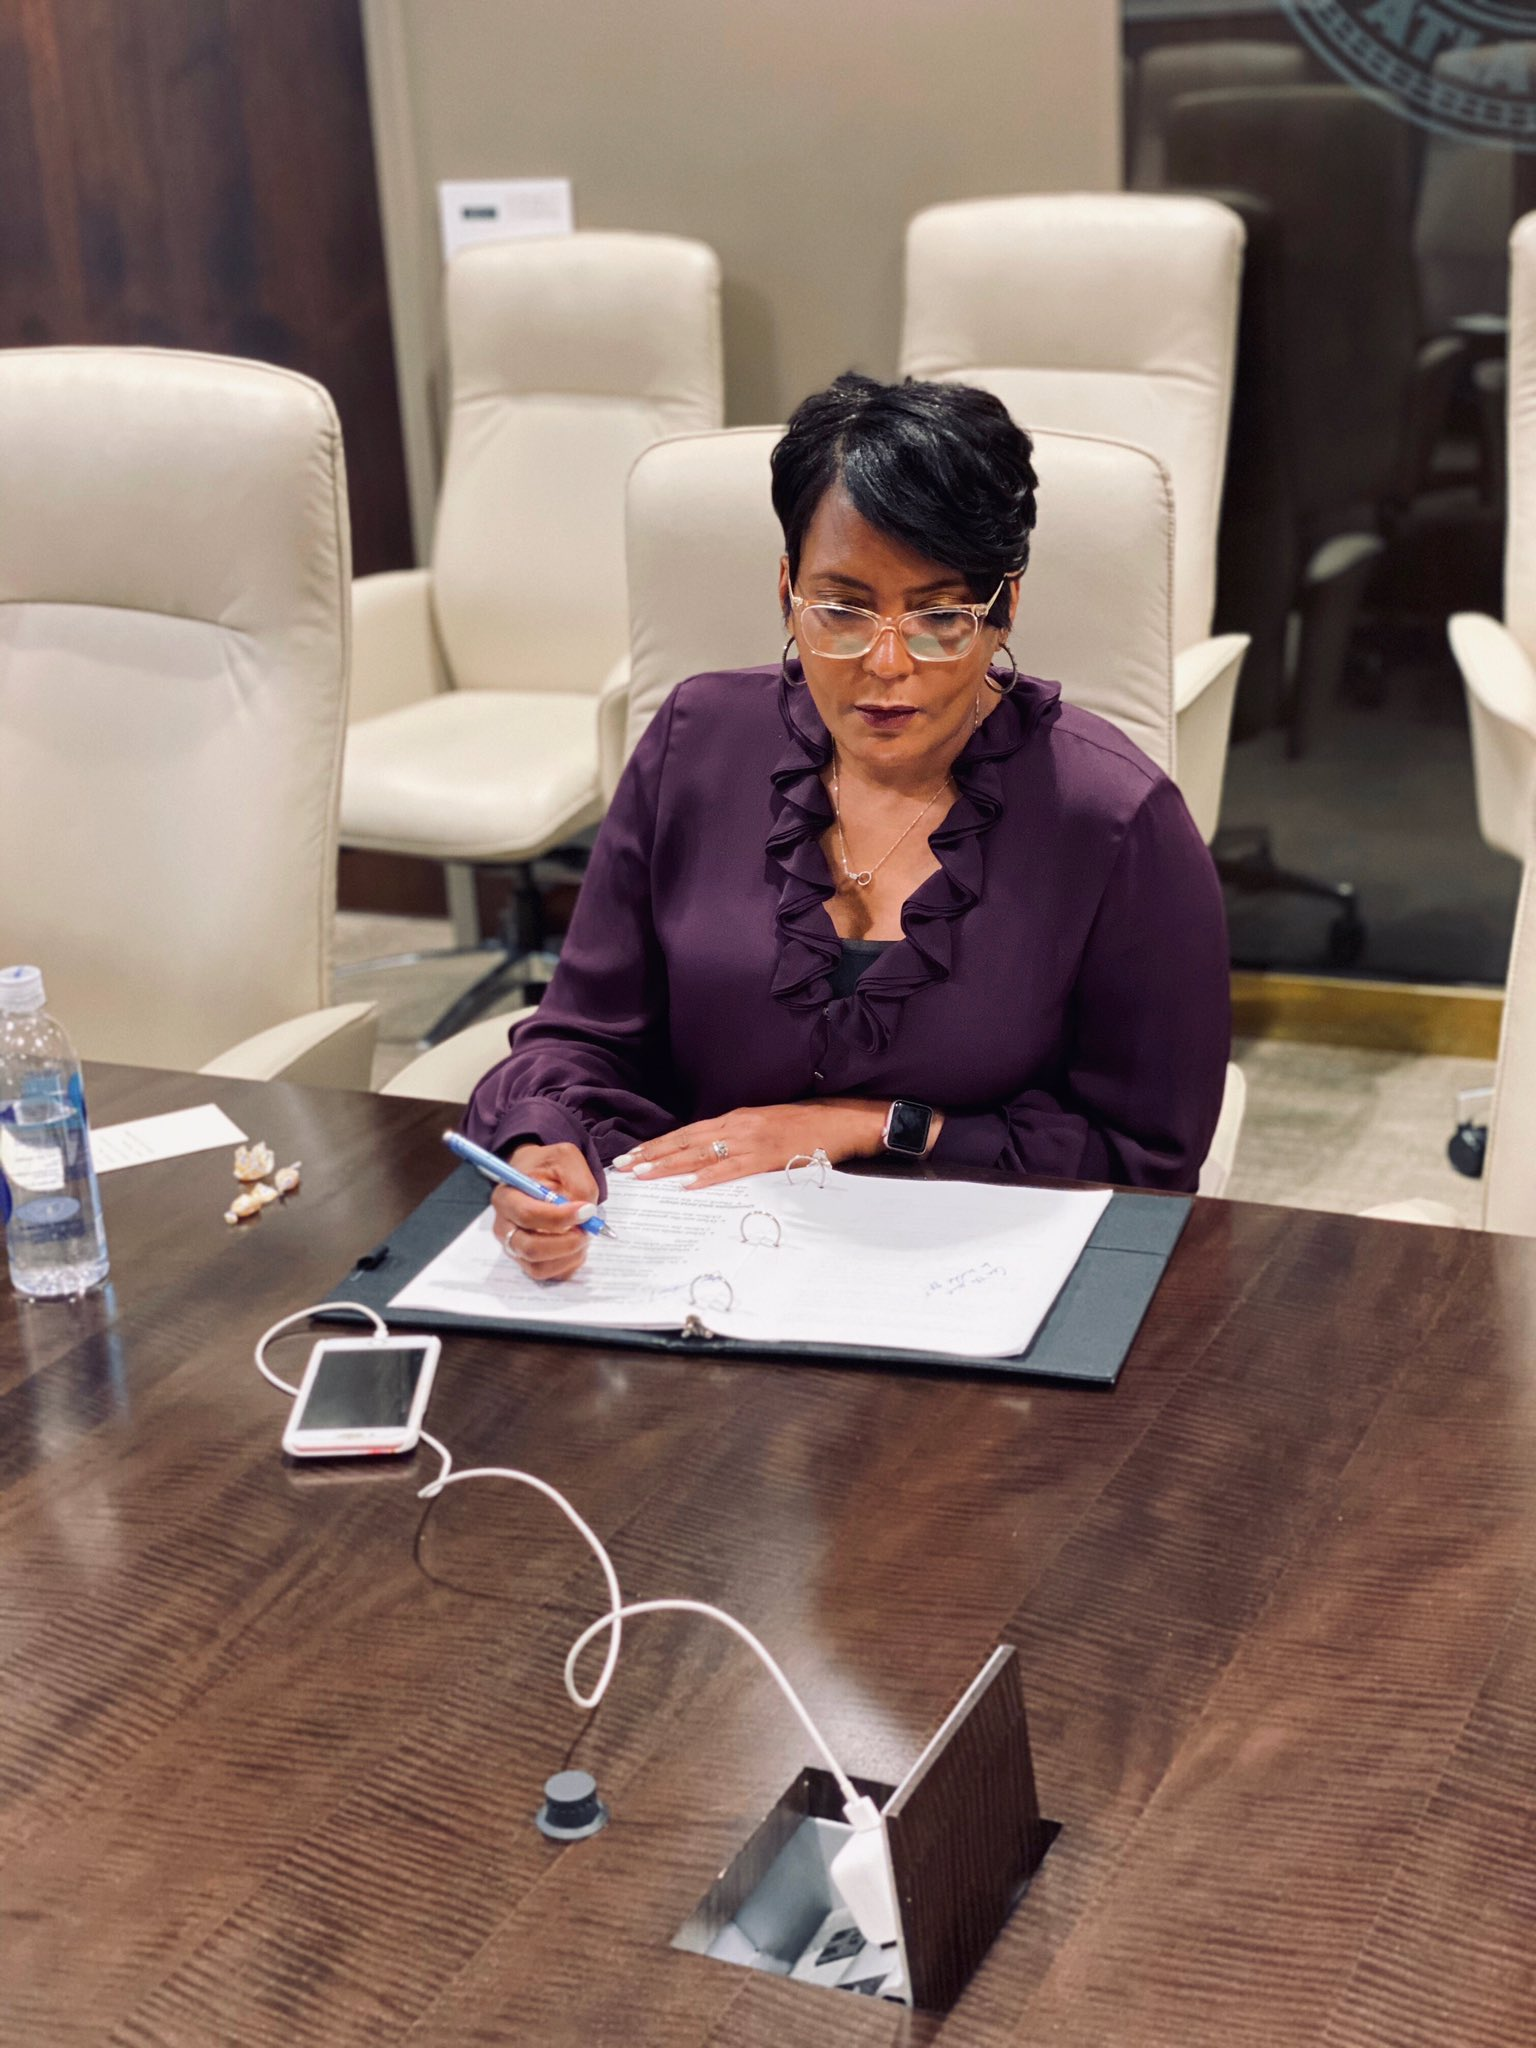 City Of Atlanta Ga On Twitter Yesterday Mayor Keishabottoms Convened The First Meeting As Chair Of Govkemp S Coronavirus Task Force Committee For The Homeless Displaced Working With Partners Stakeholders To